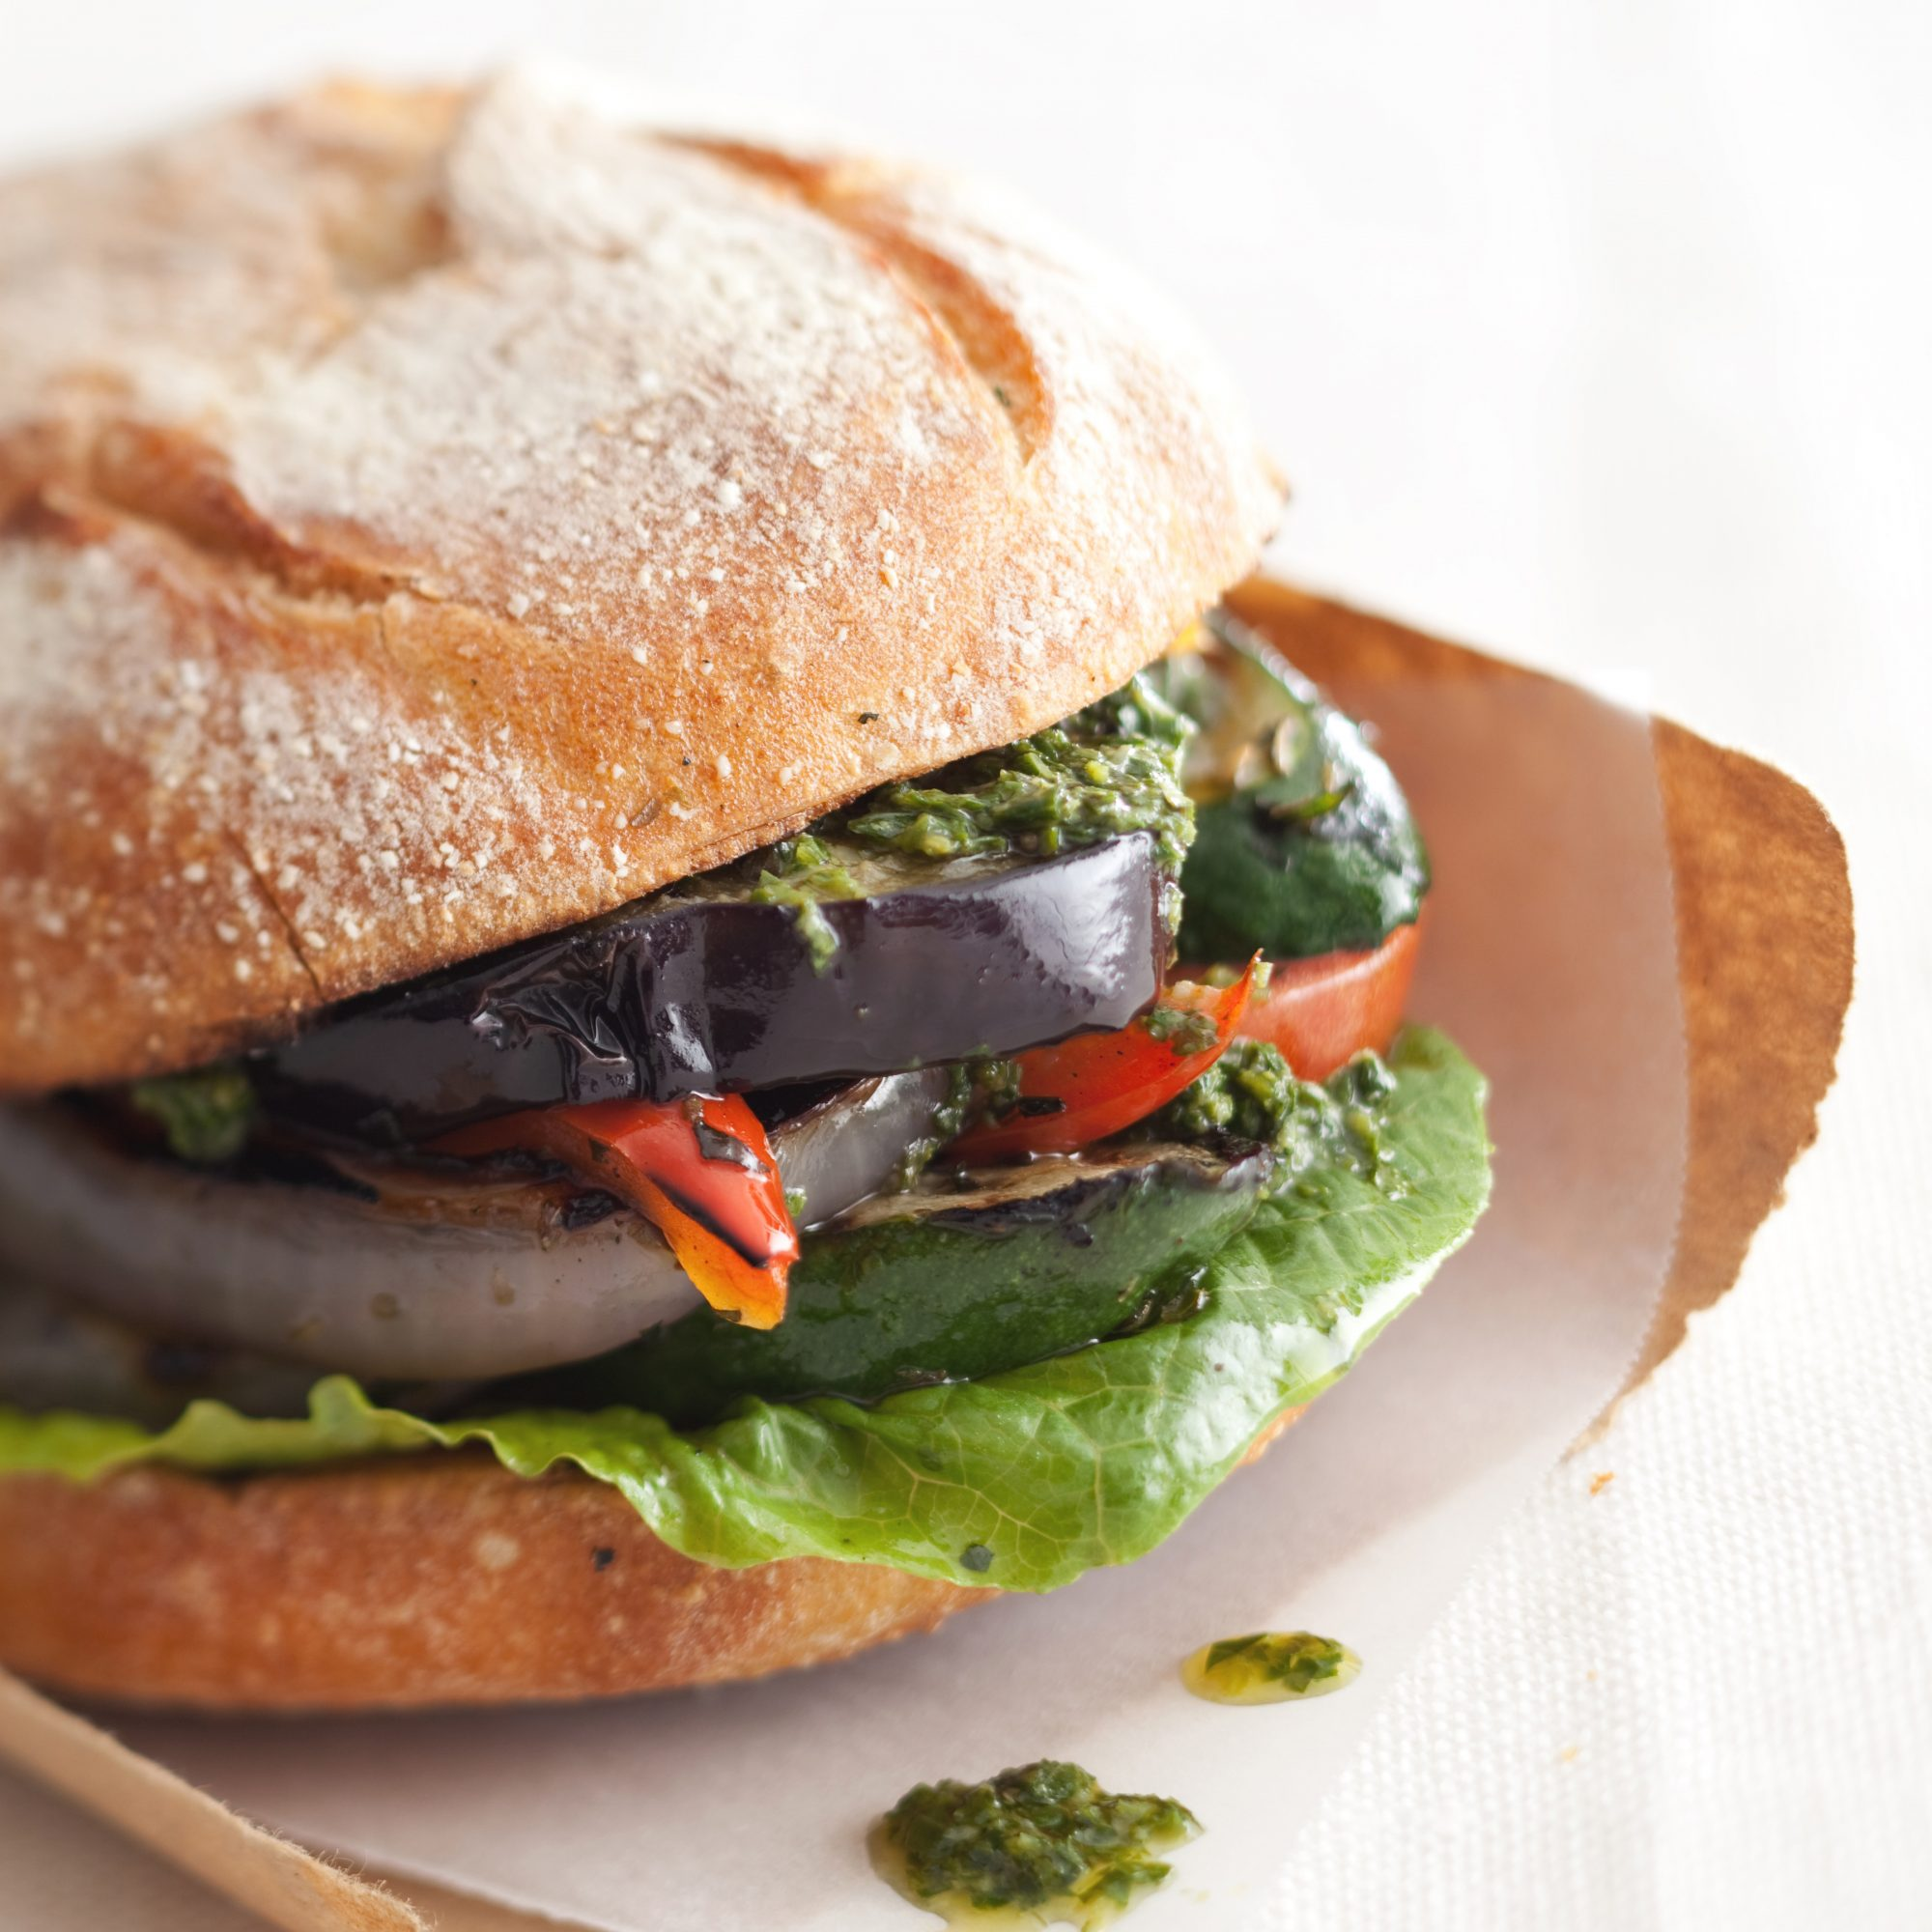 original-201204-r-grilled-vegetable-sandwich.jpg